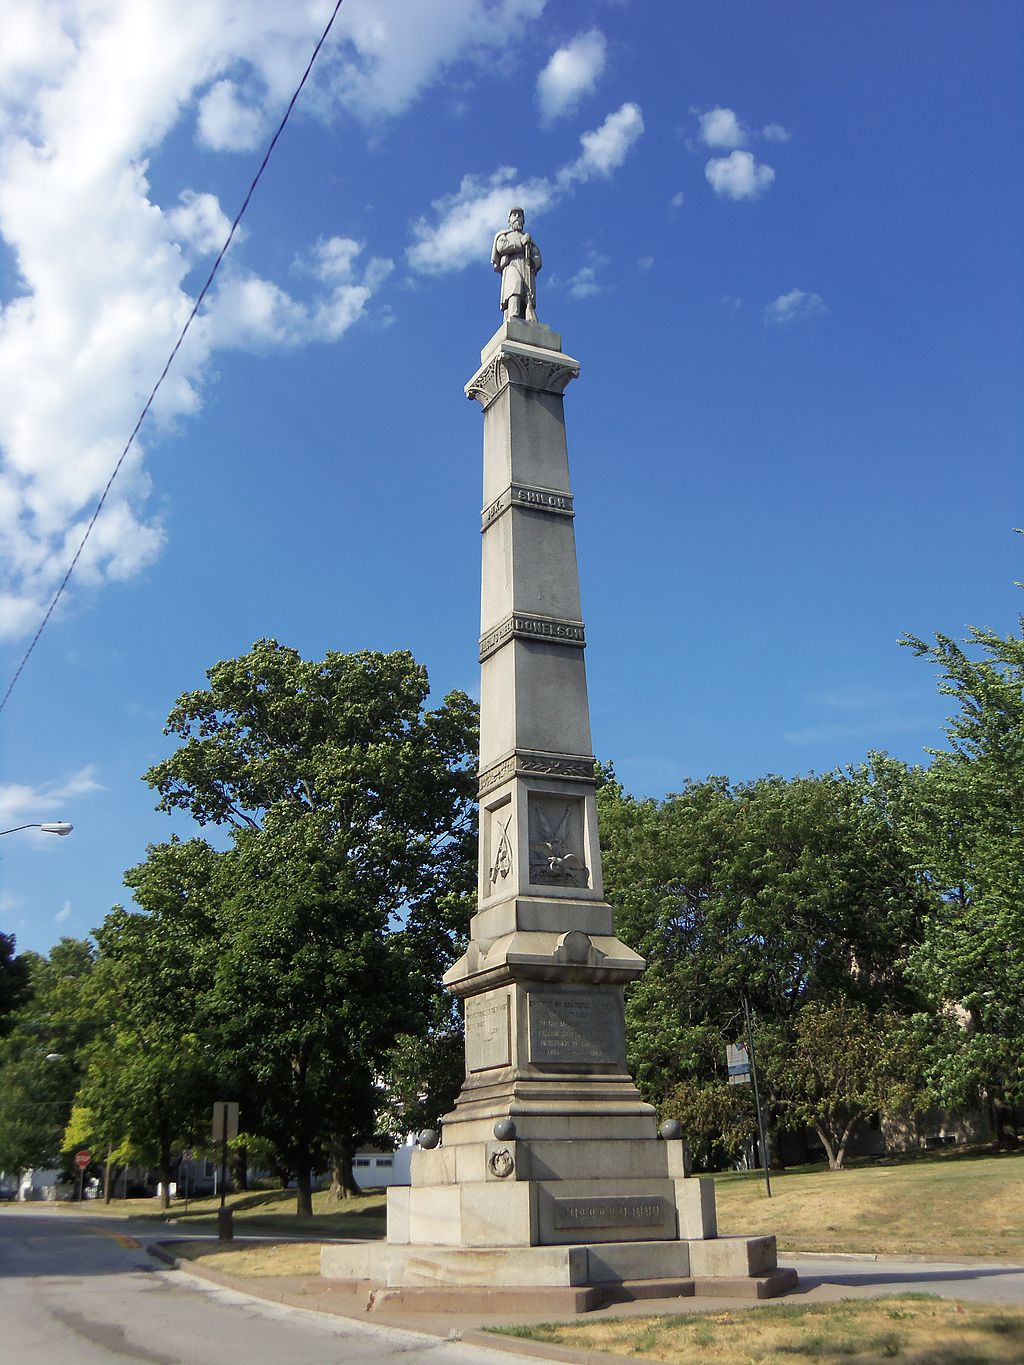 The Soldier's Monument was built in 1881.